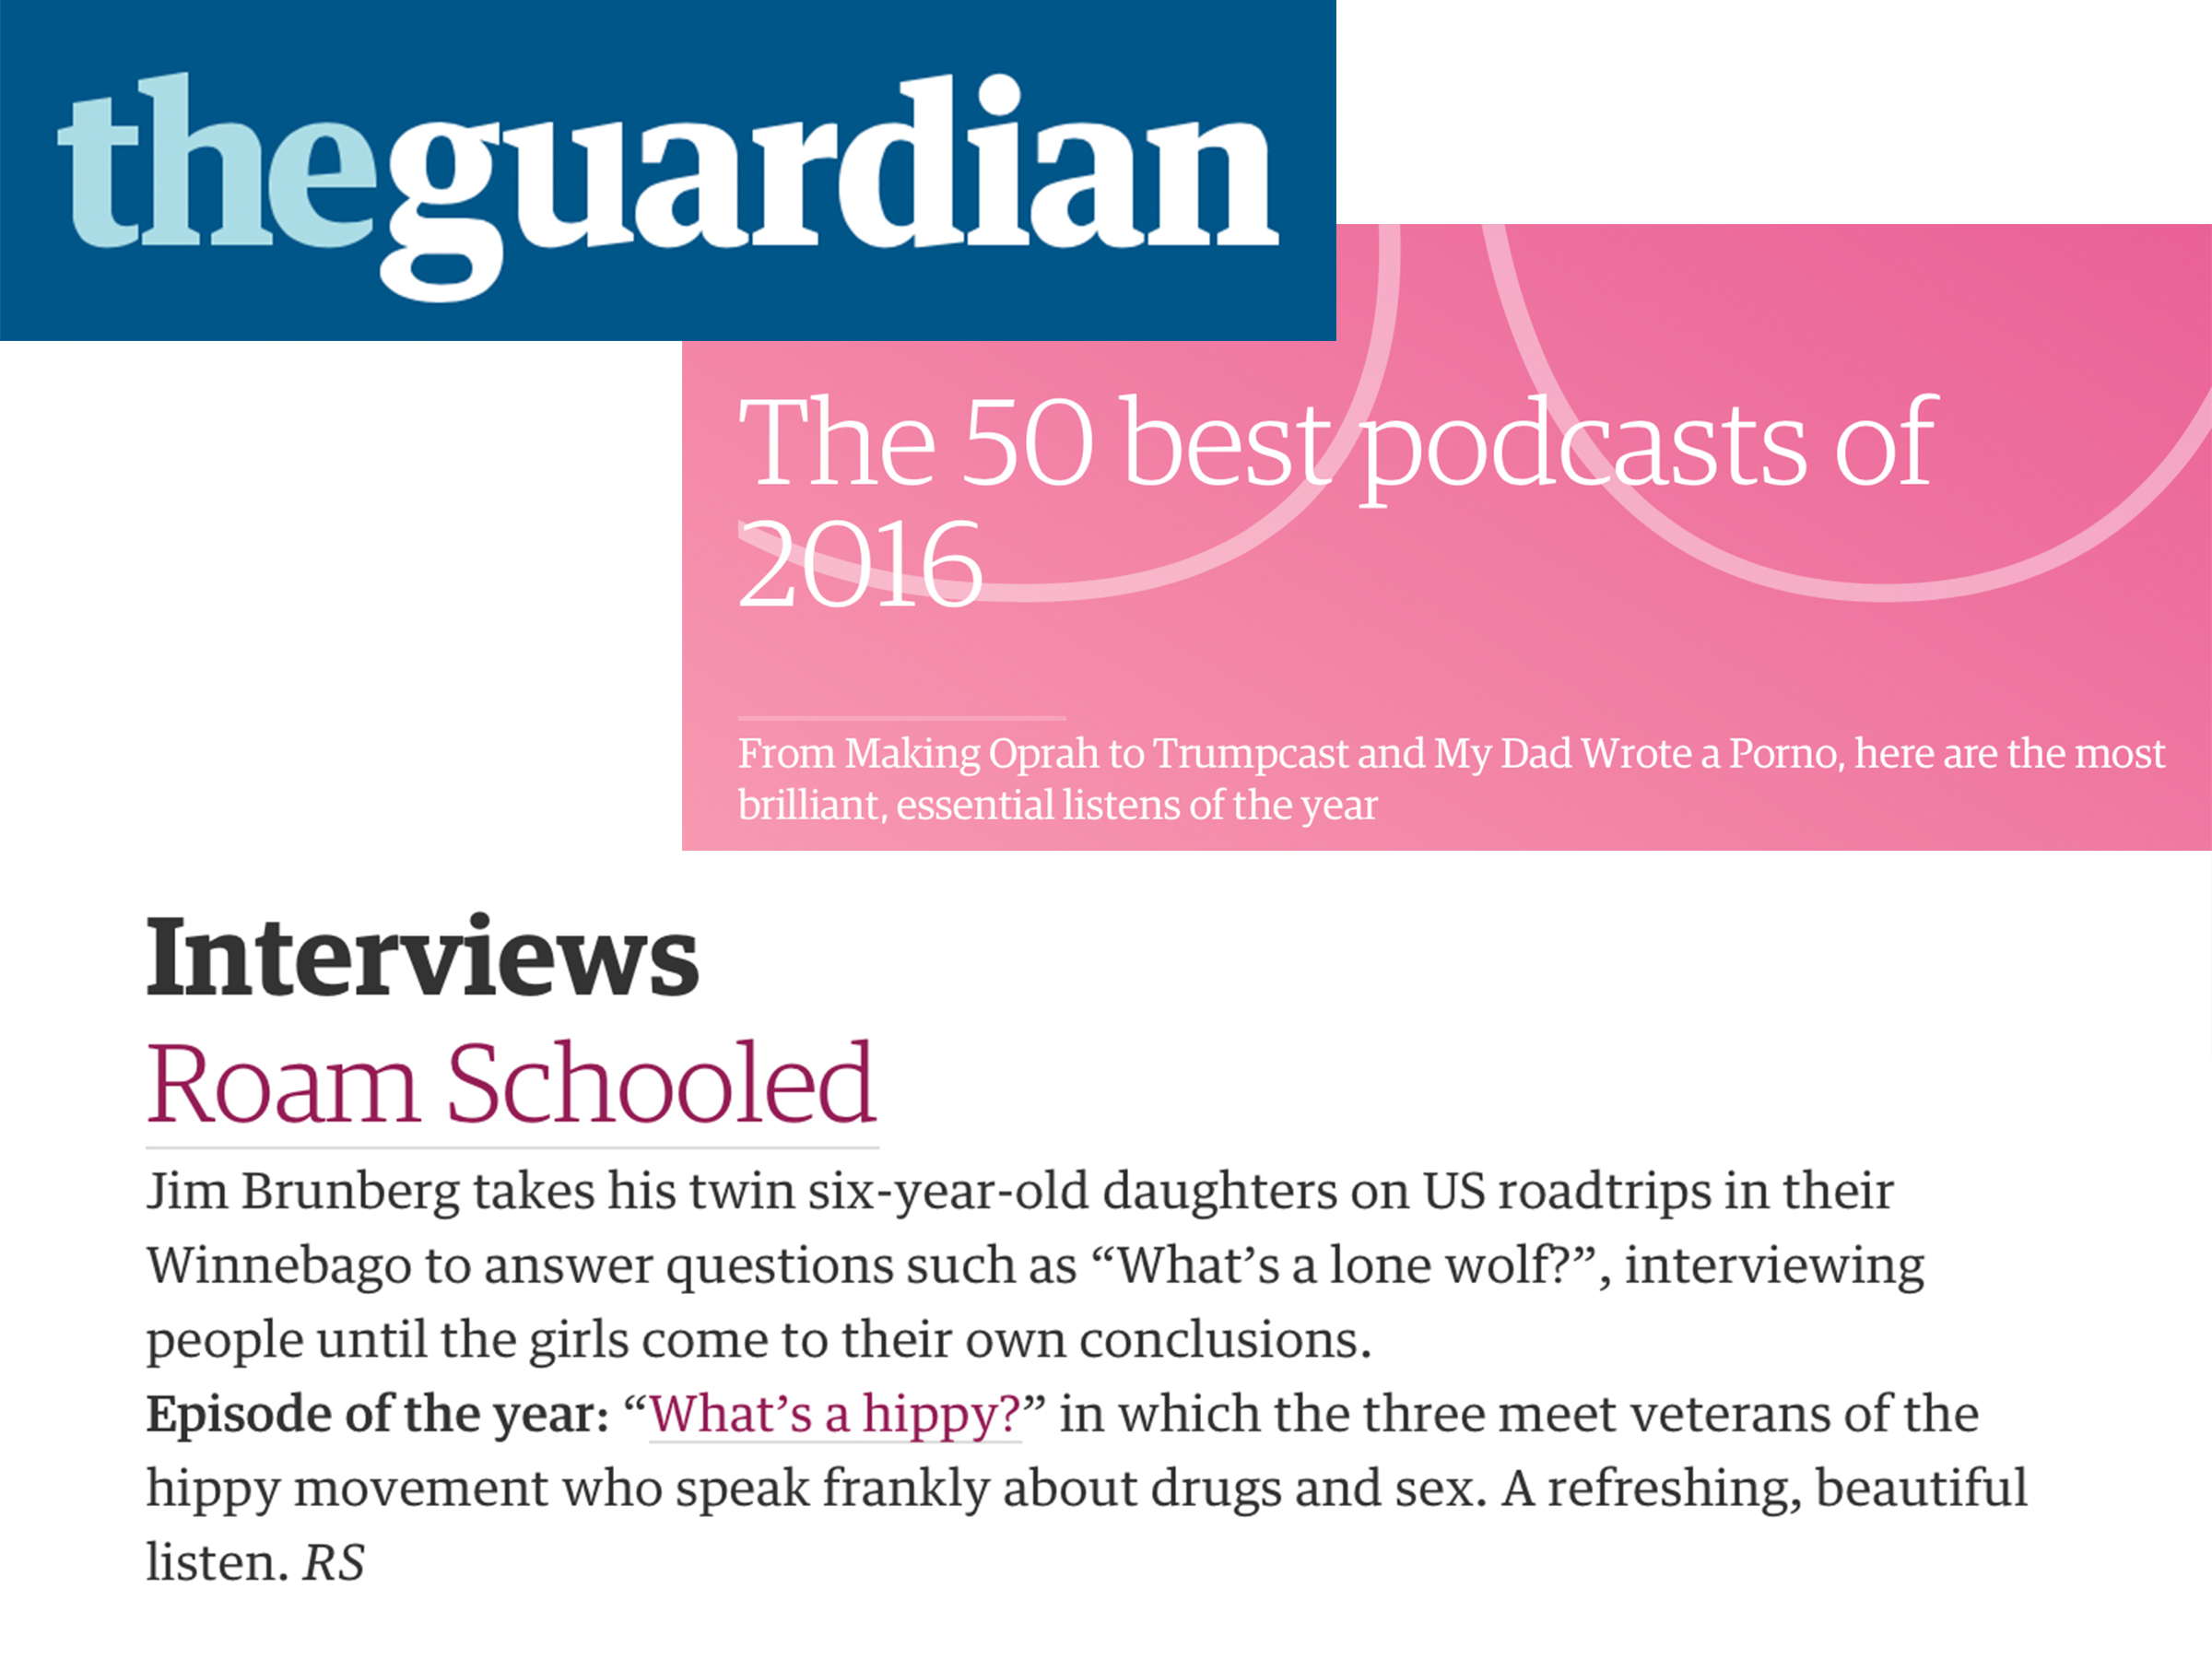 The Guardian - The 50 best Podcasts of 2016